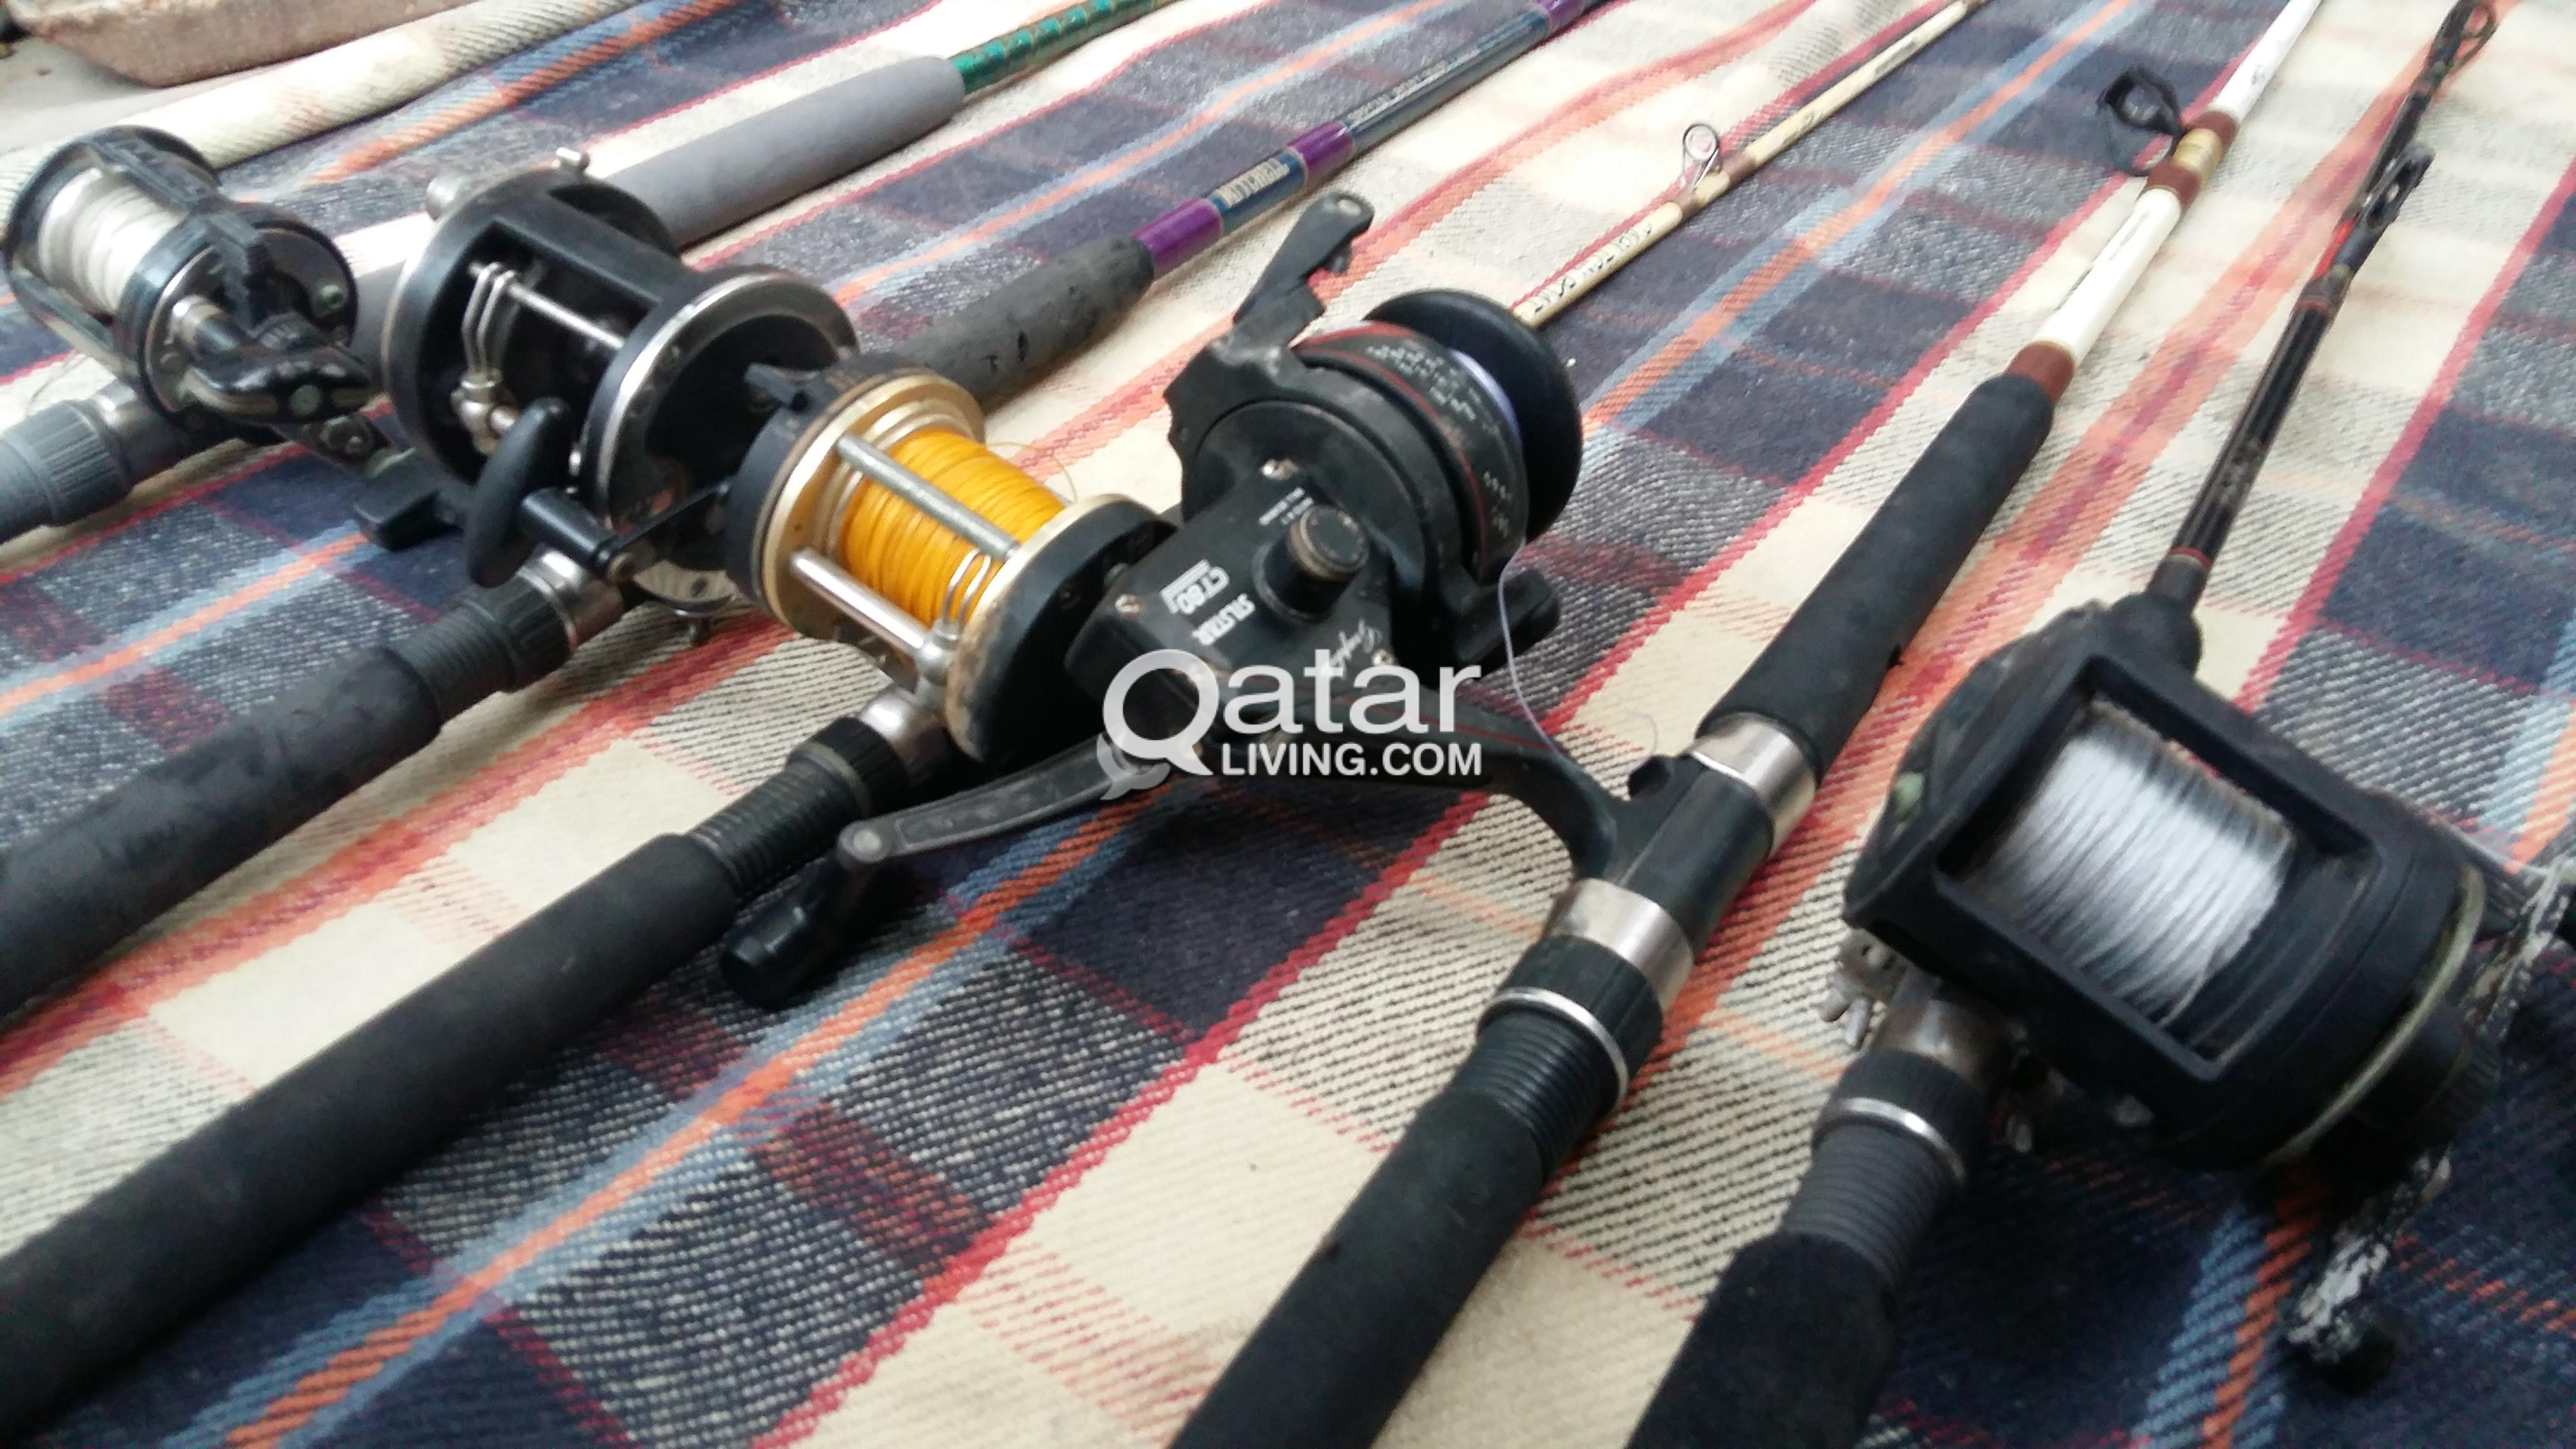 FISHING RODS AND LURES FOR SALE USED | Qatar Living